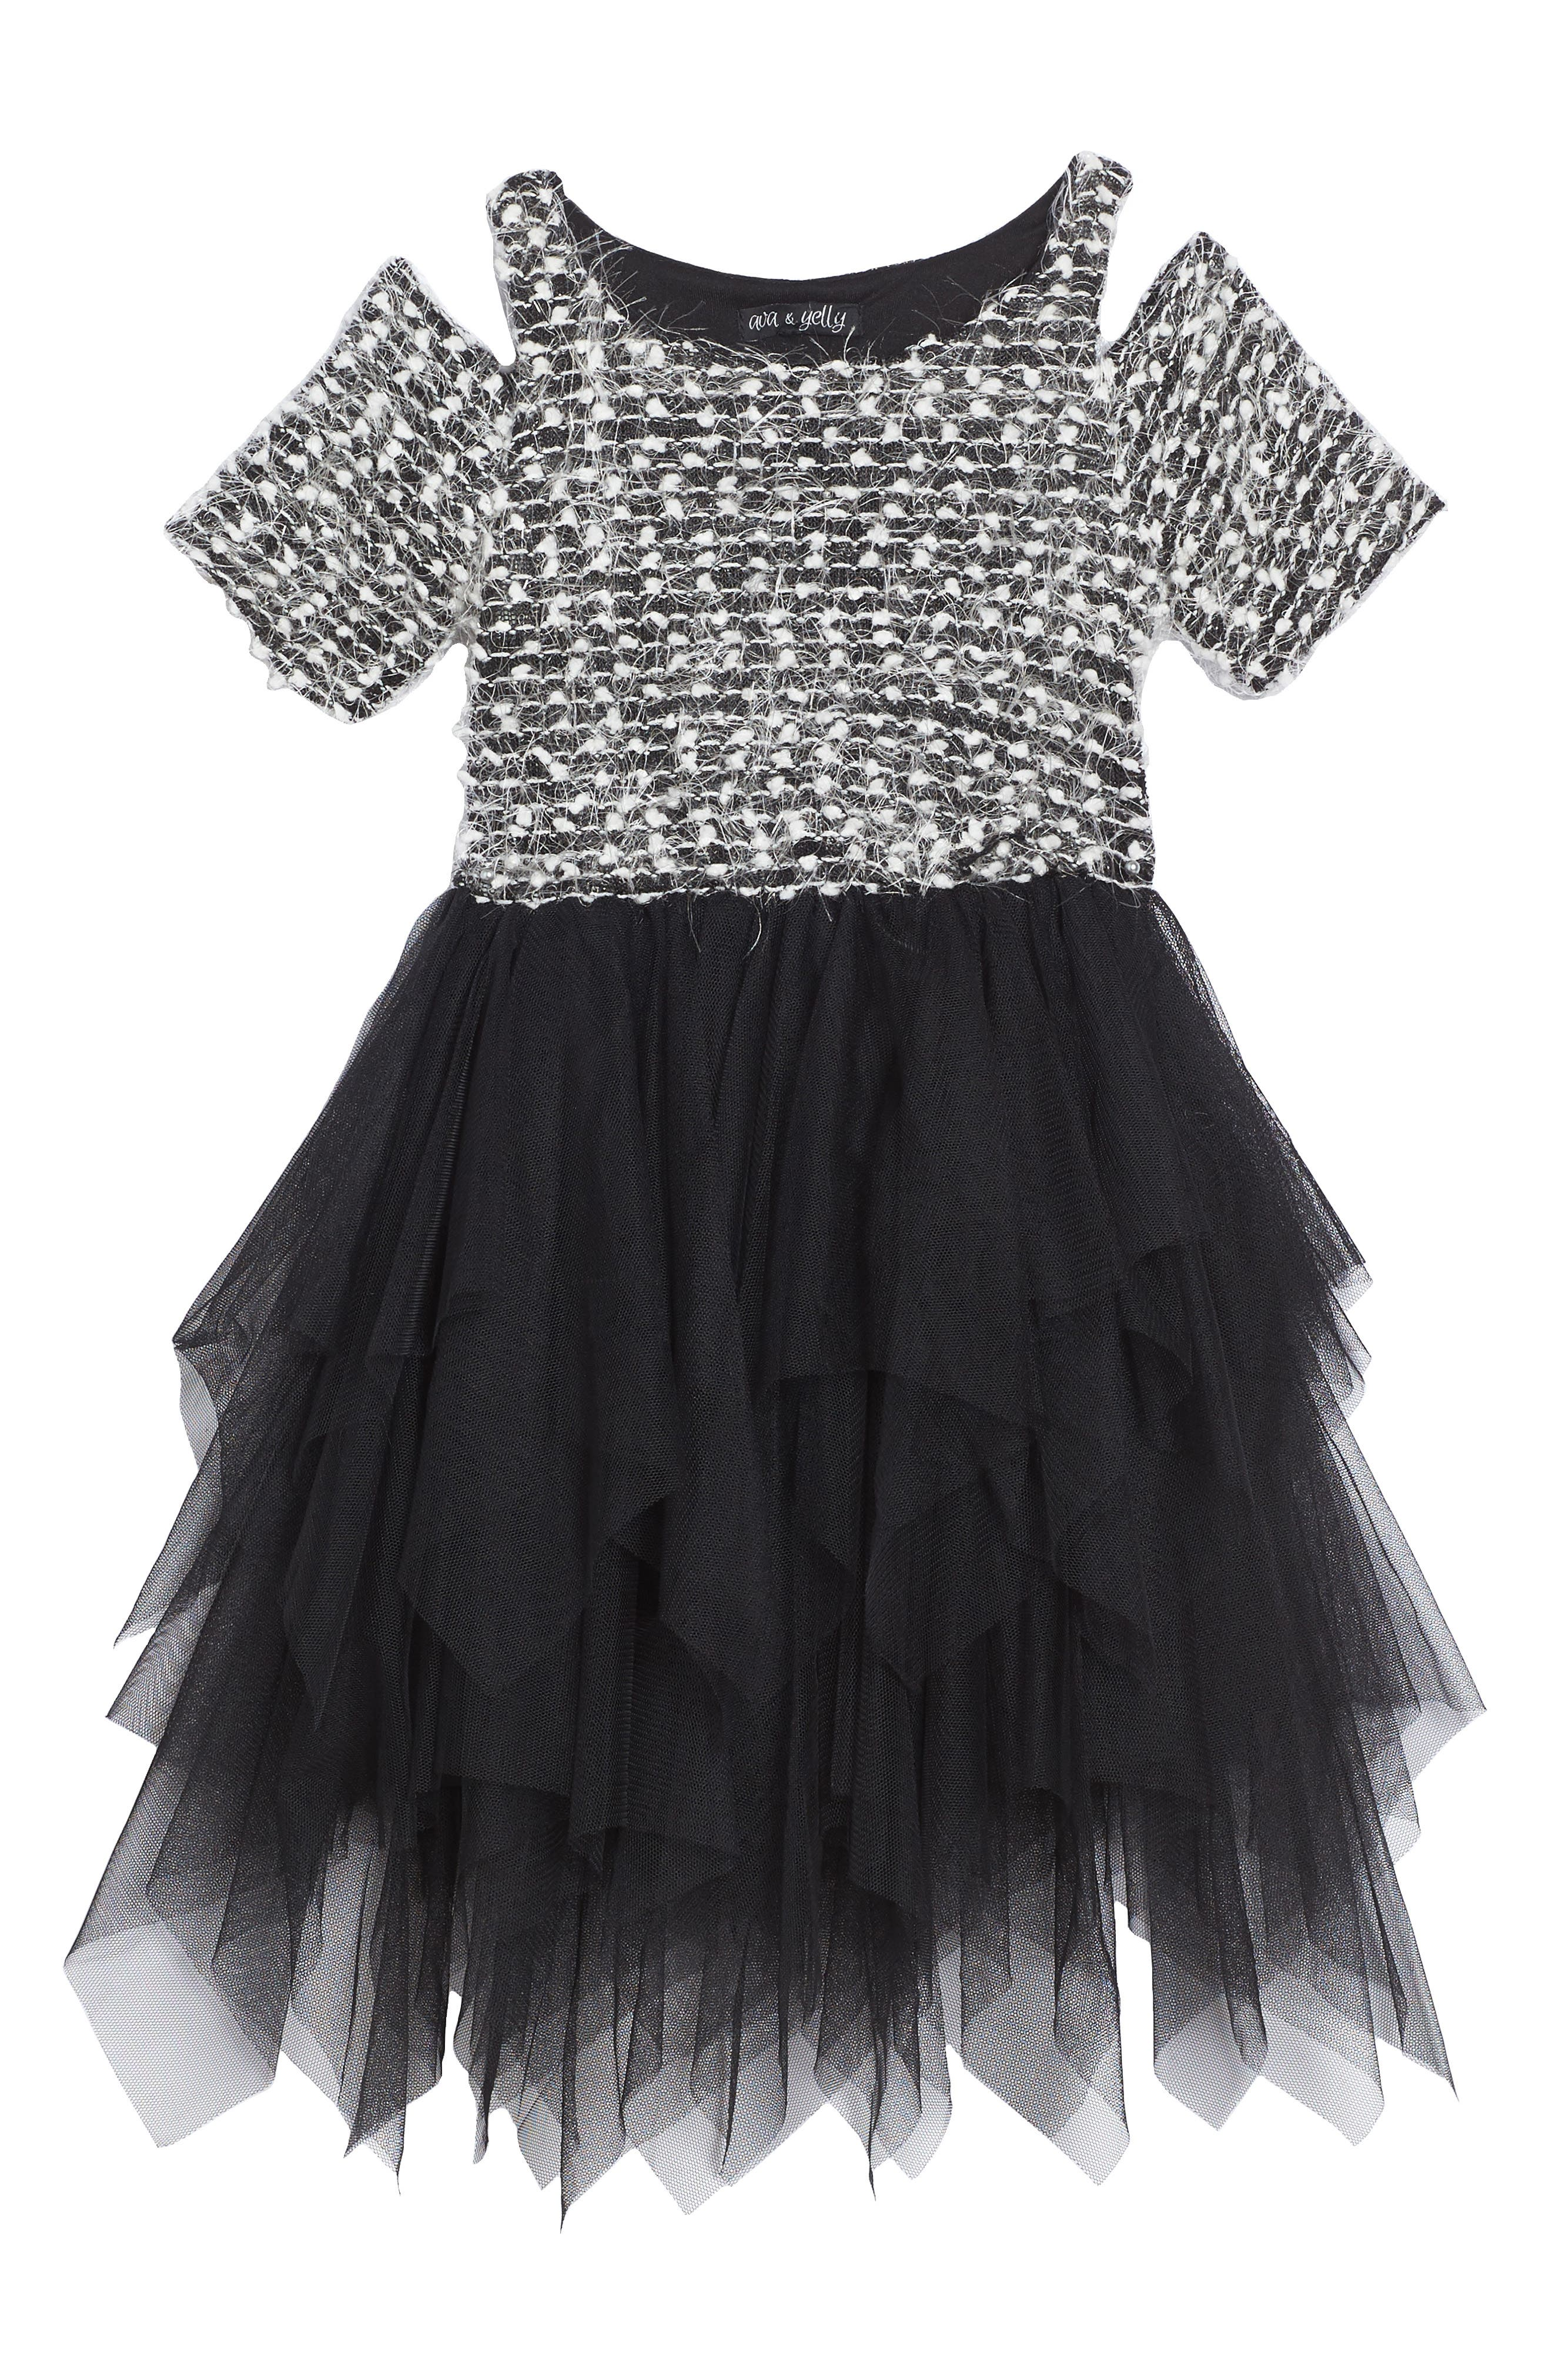 Alternate Image 1 Selected - Ava & Yelly Sweater Tutu Dress (Toddler Girls & Little Girls)